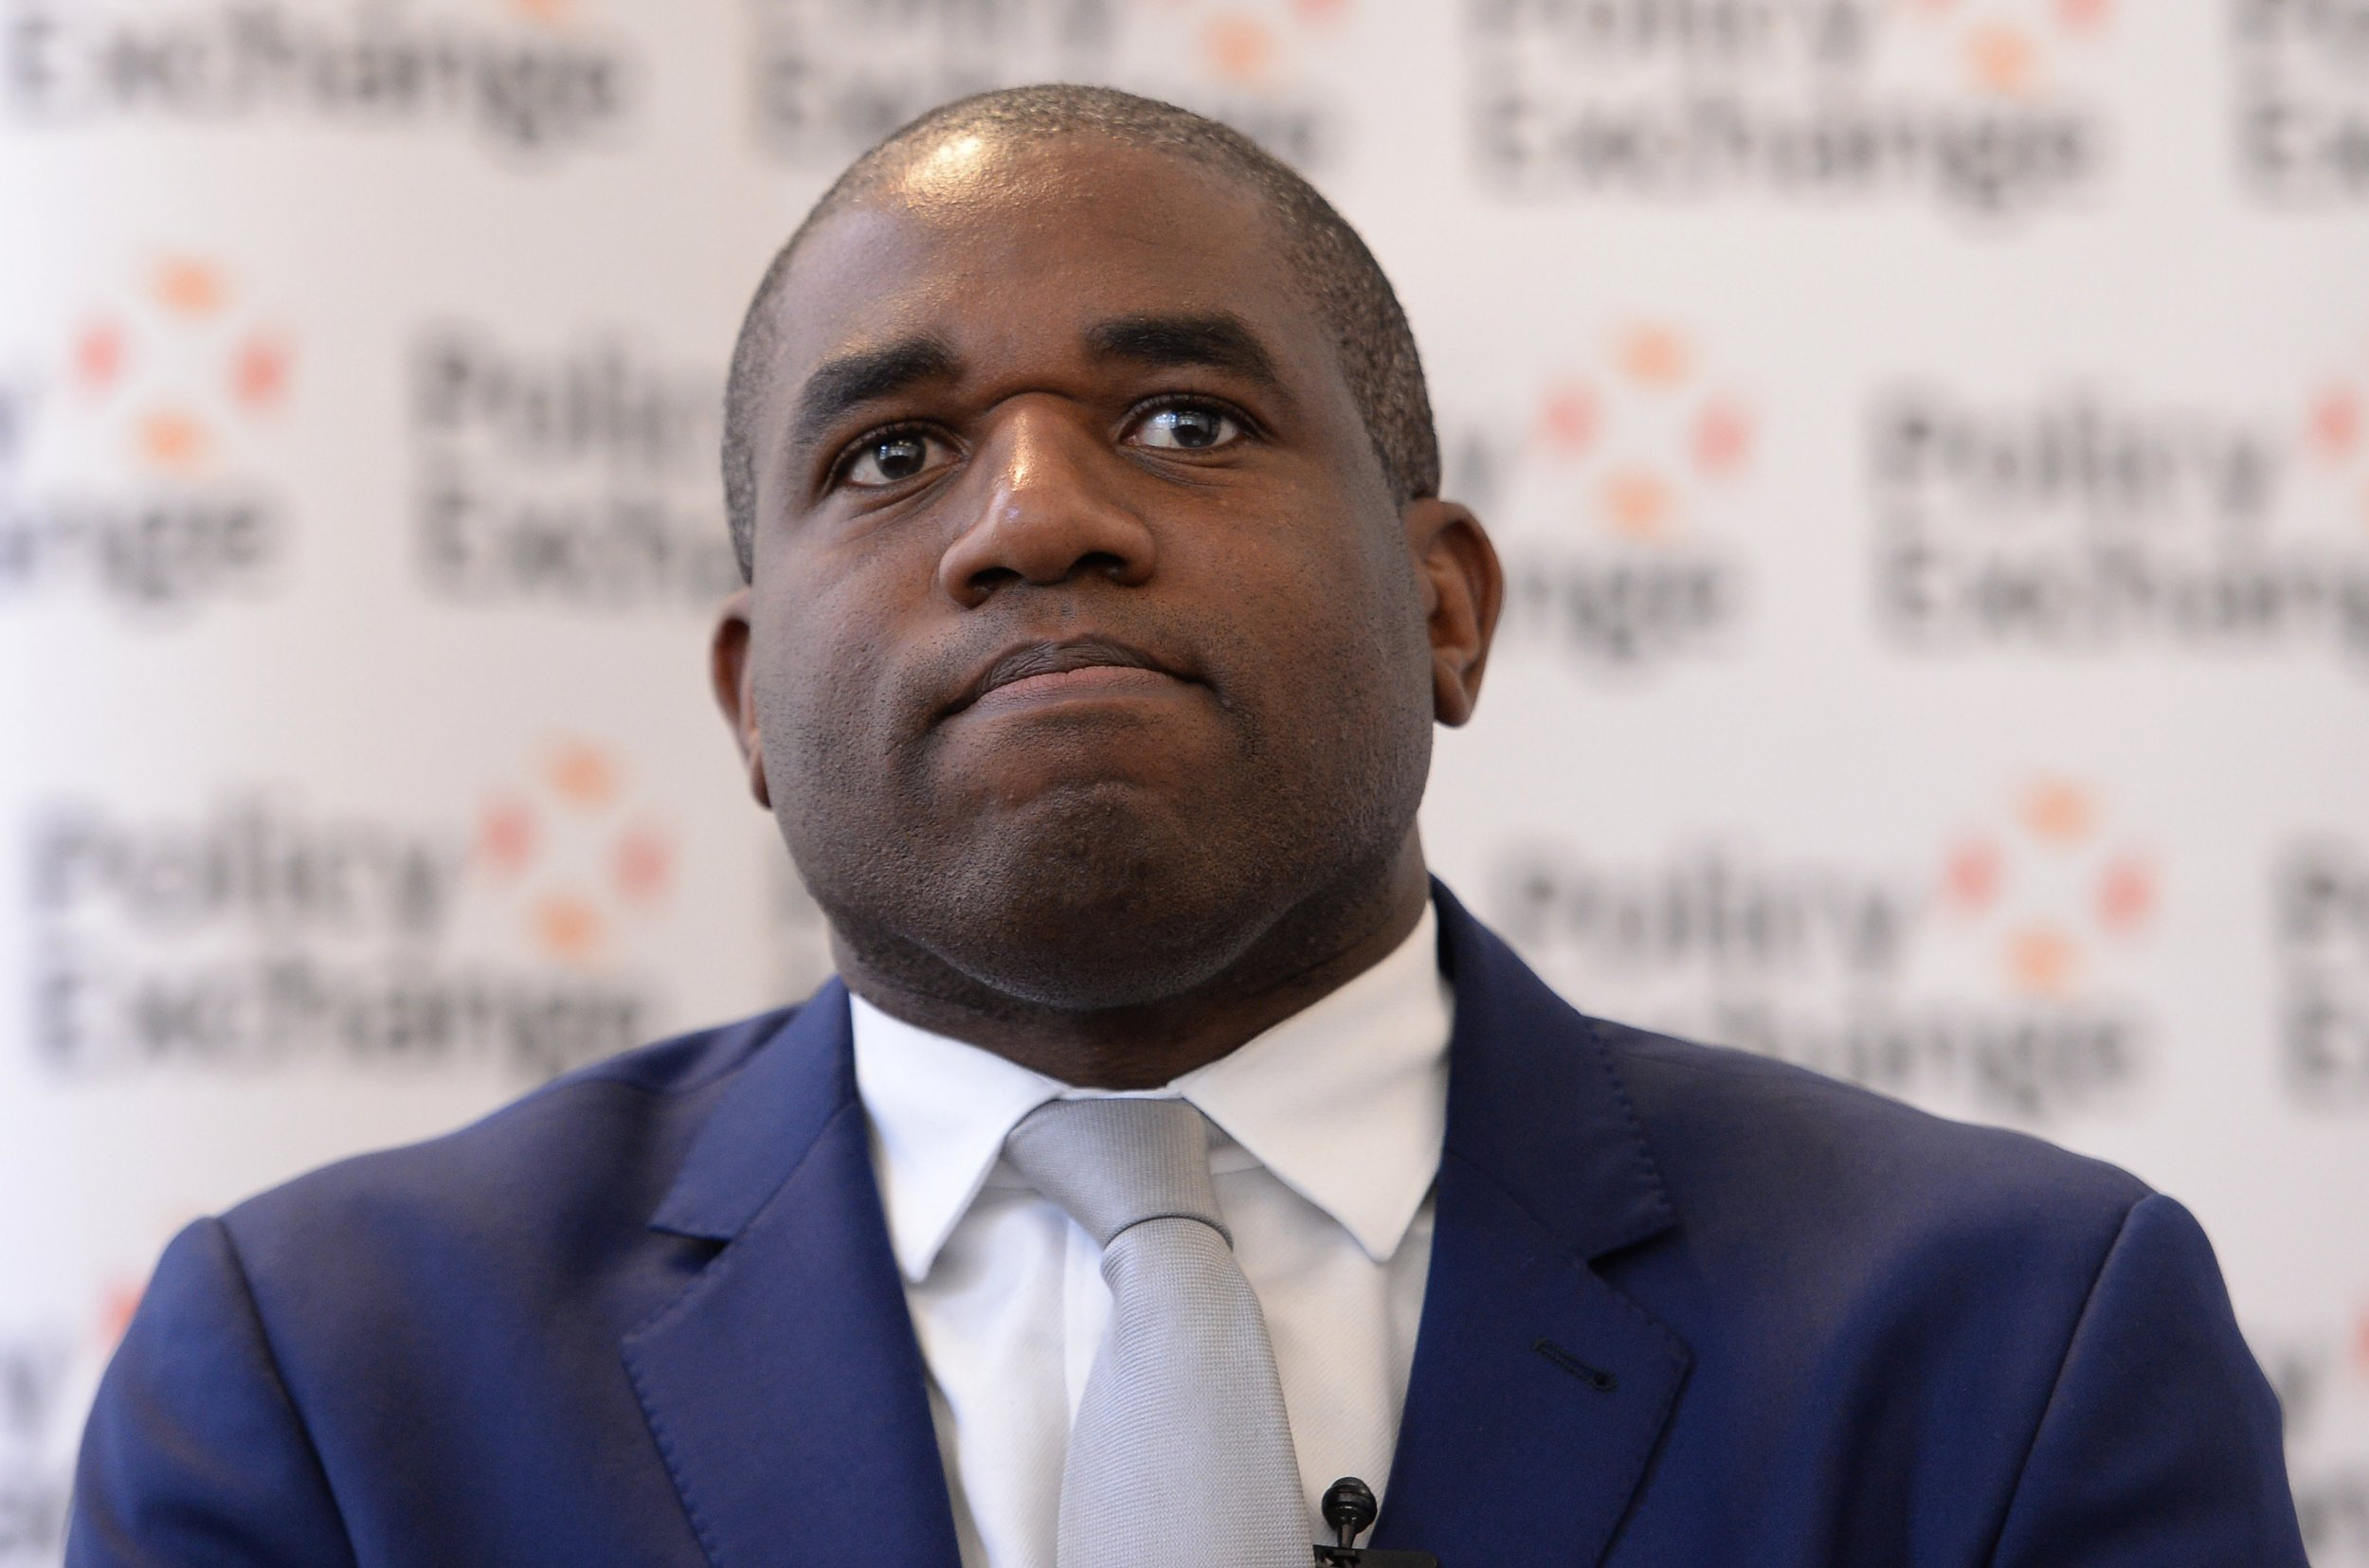 """File photo dated 03/03/15 of David Lammy, as the Labour MP has been subjected to a """"barrage"""" of racist and threatening messages after calling for Parliament to vote against Brexit in the wake of the EU referendum. PRESS ASSOCIATION Photo. Issue date: Monday July 4, 2016. The Remain backer and his staff were targeted after he called for a rethink on the referendum result. See PA story POLITICS Racism. Photo credit should read: Stefan Rousseau/PA Wire"""